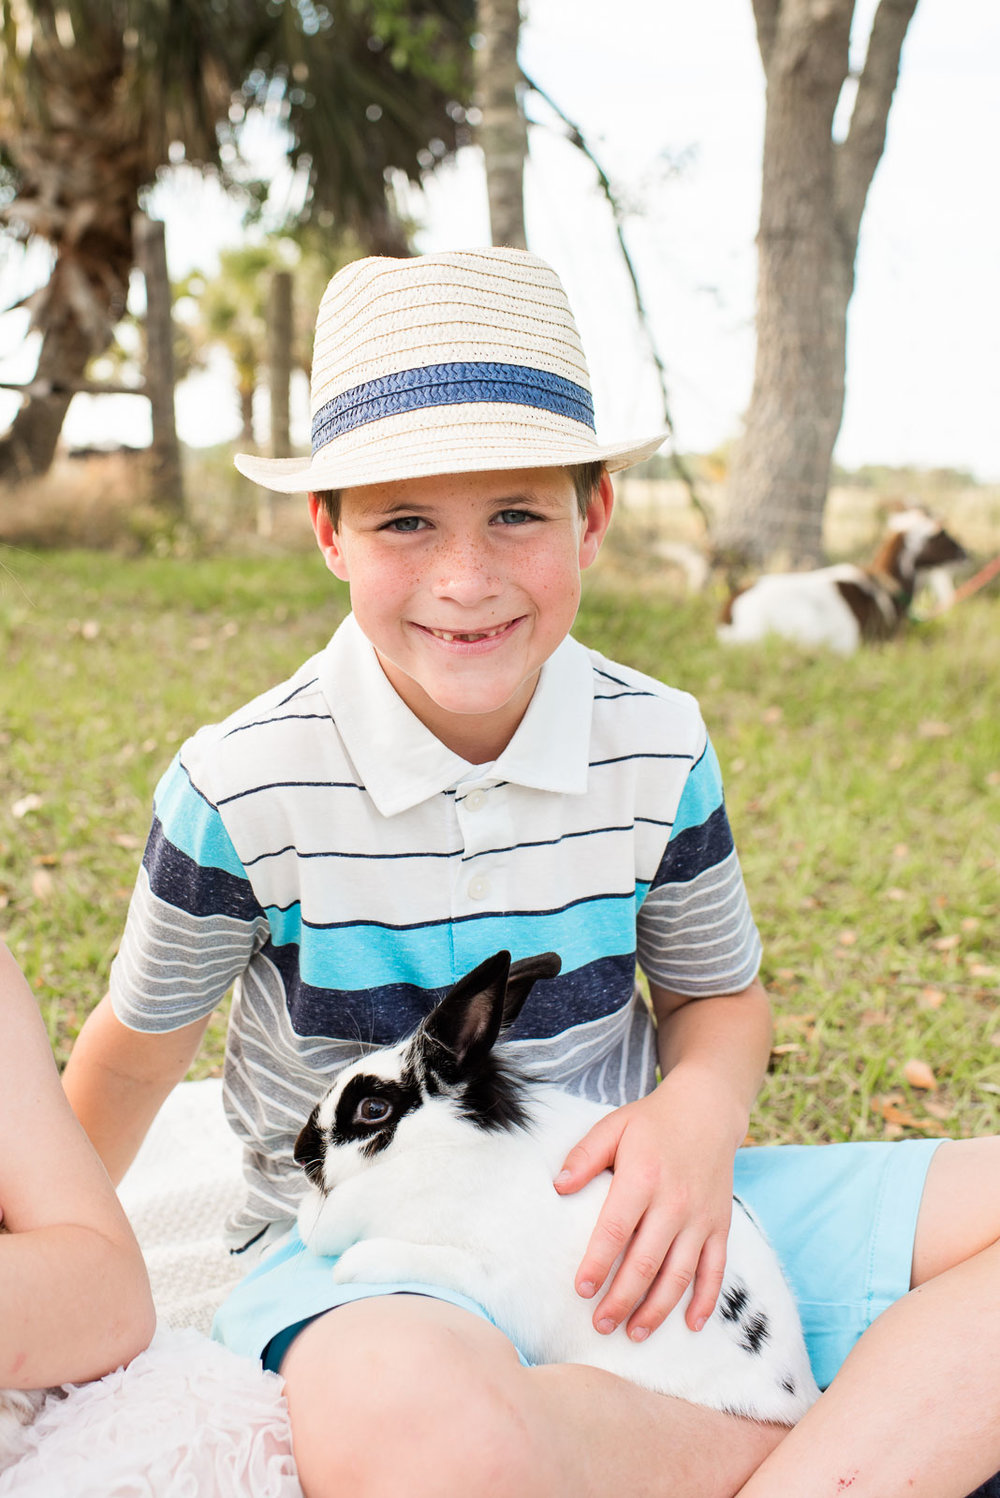 easter-photo-sessions-children-animals-02-6.jpg